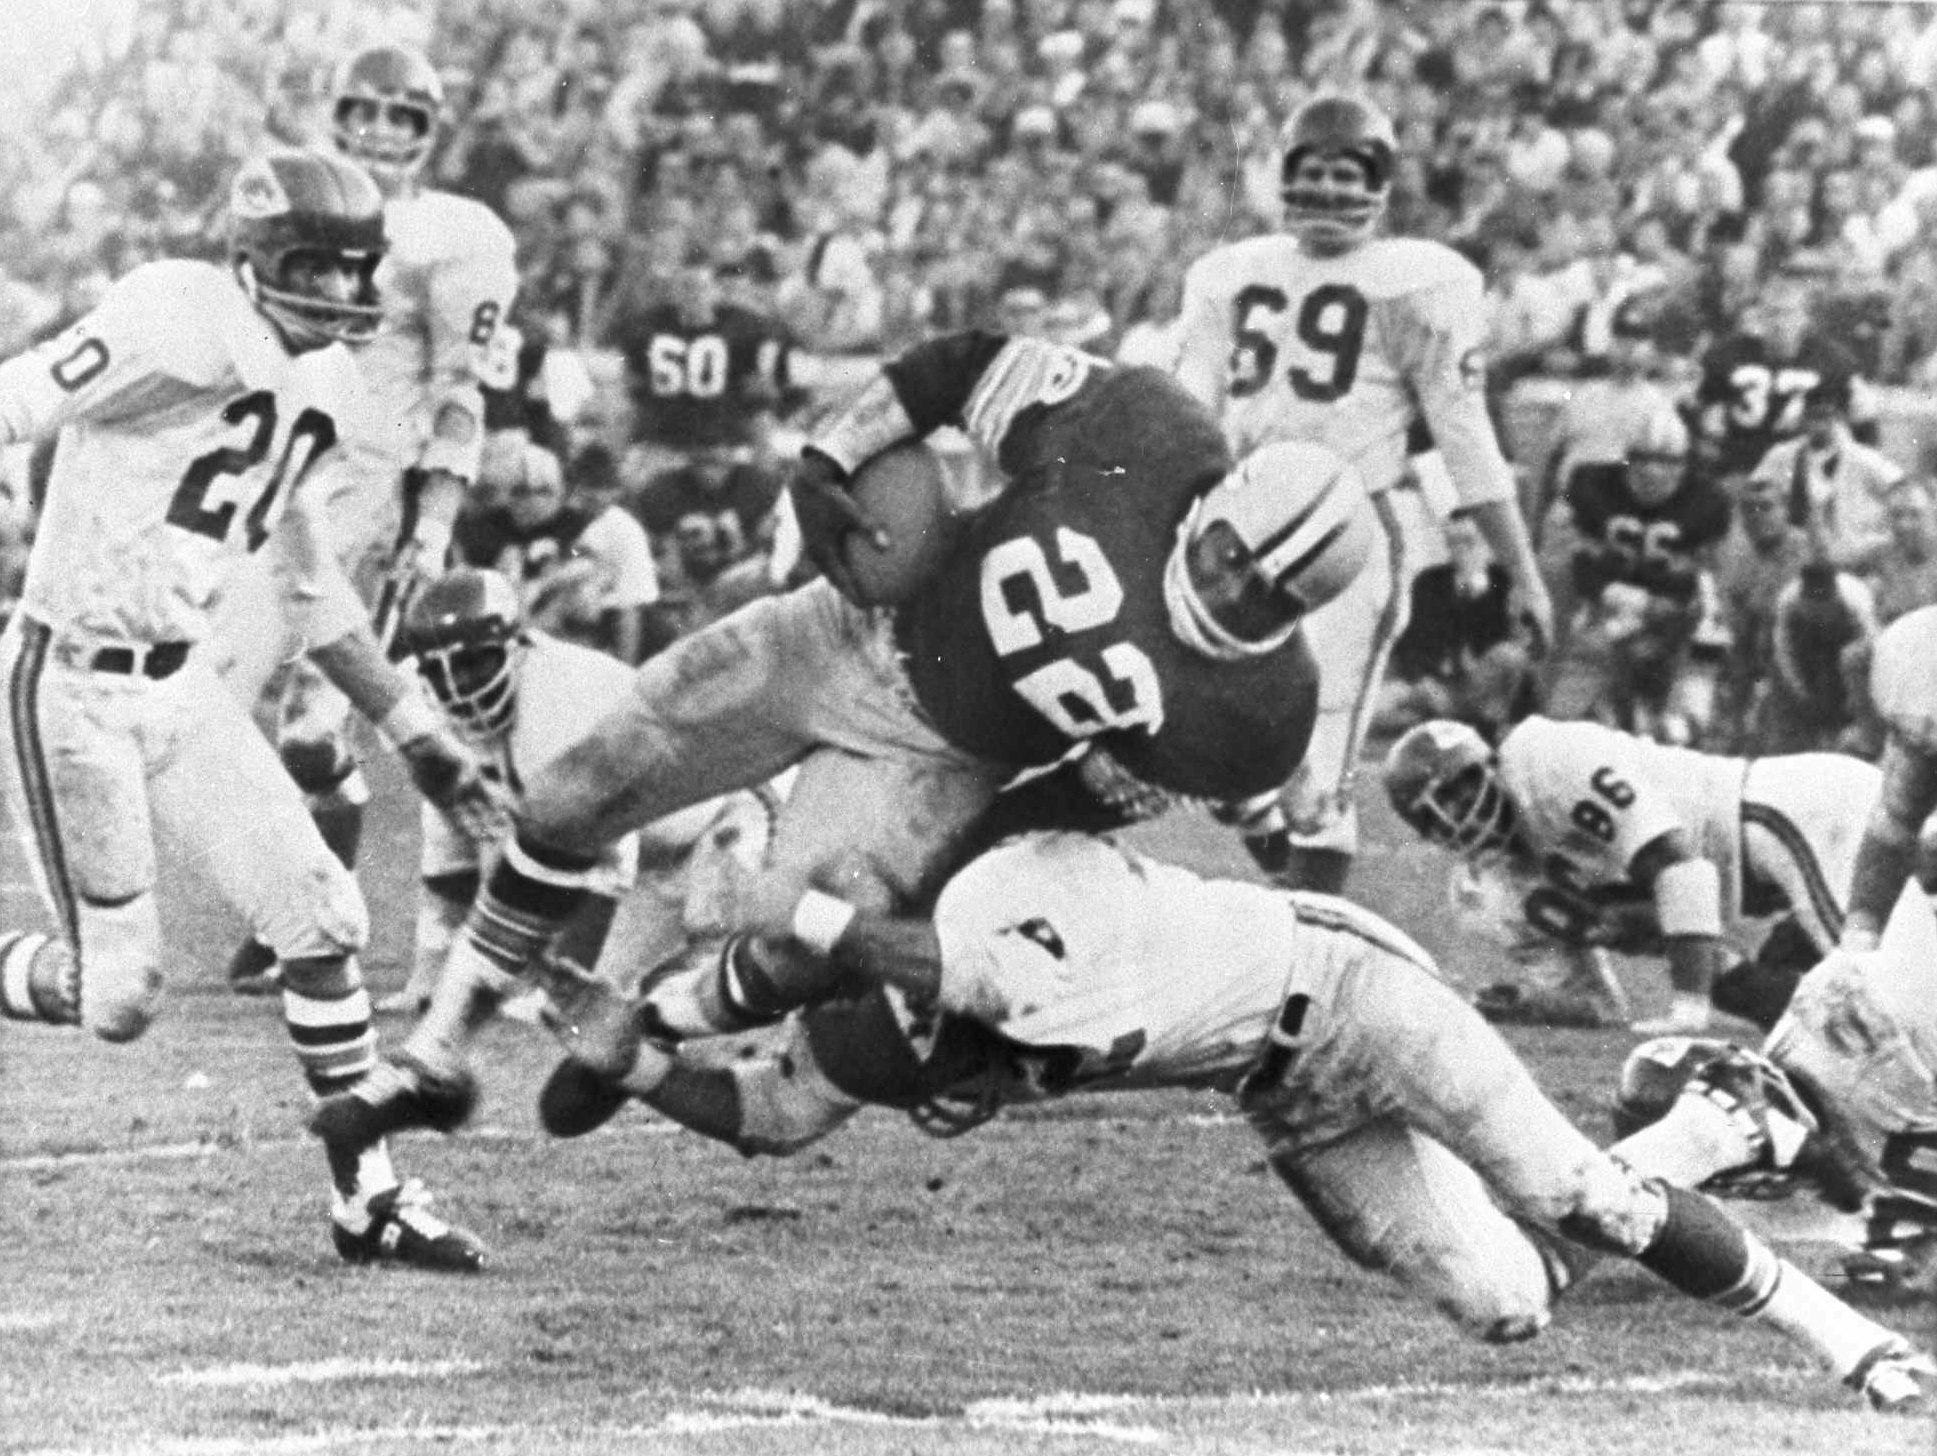 Johnny Robinson, making the tackle, made the Hall in the senior category. He was a defensive star with the Kansas City Chiefs franchise.